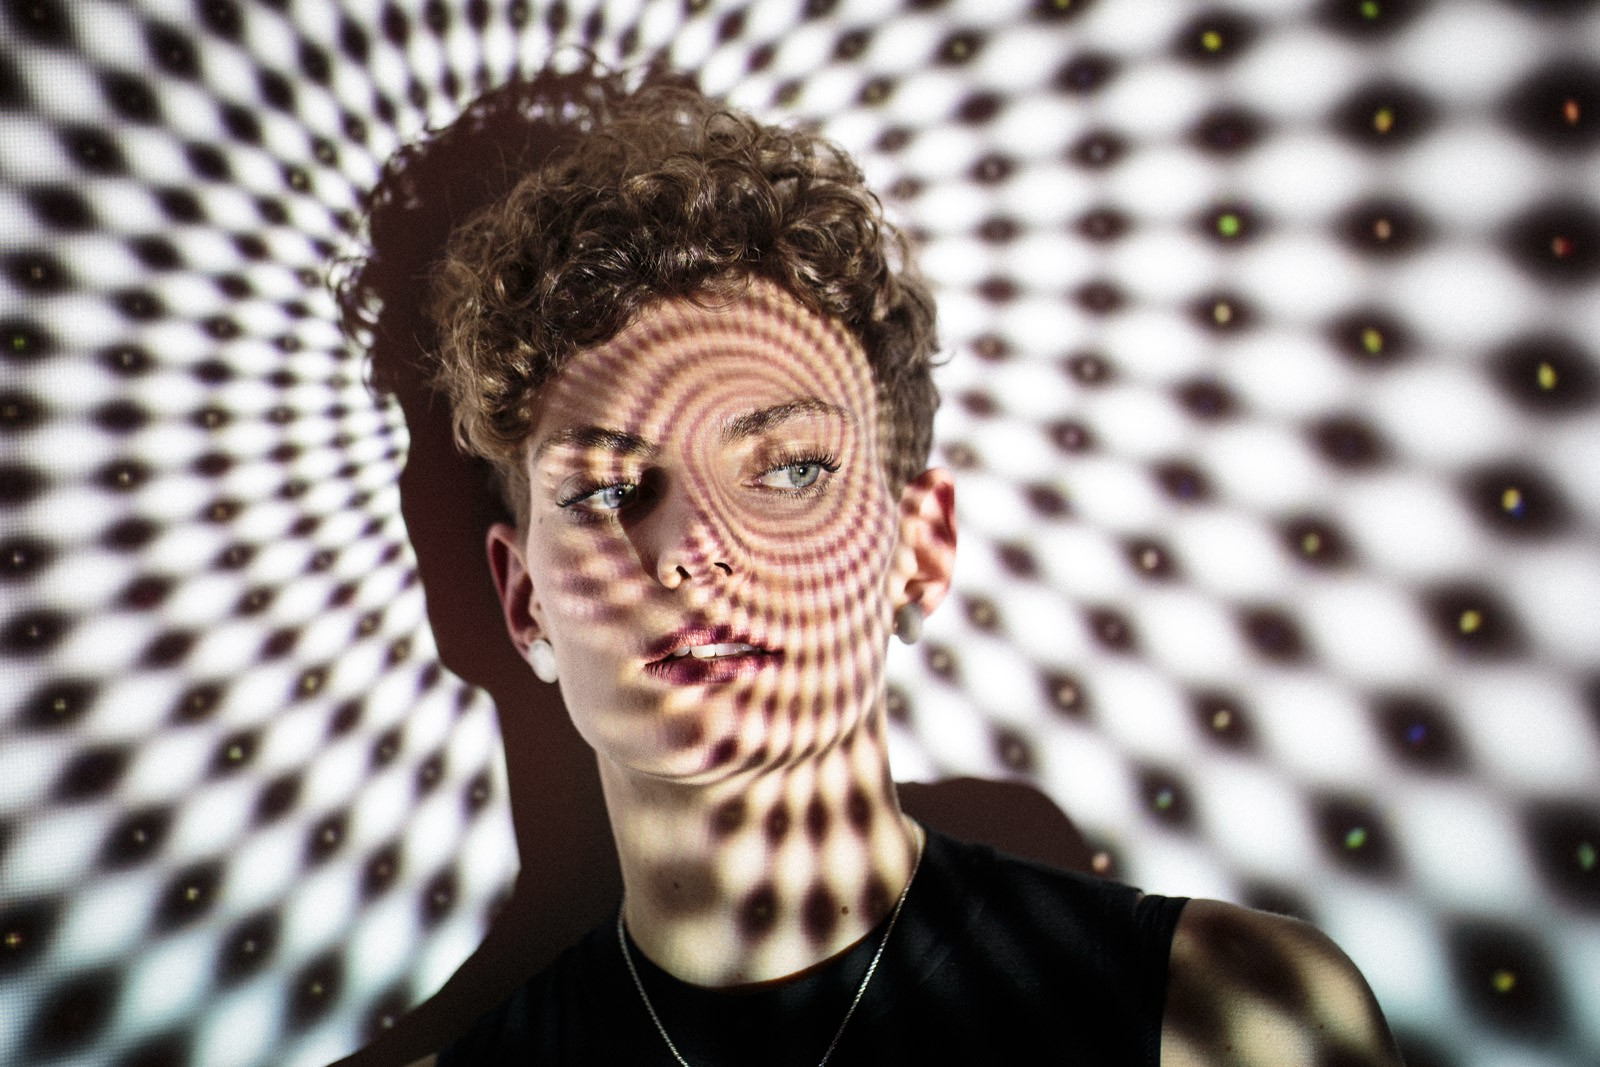 portrait of young woman with short curly hair with projected image of art